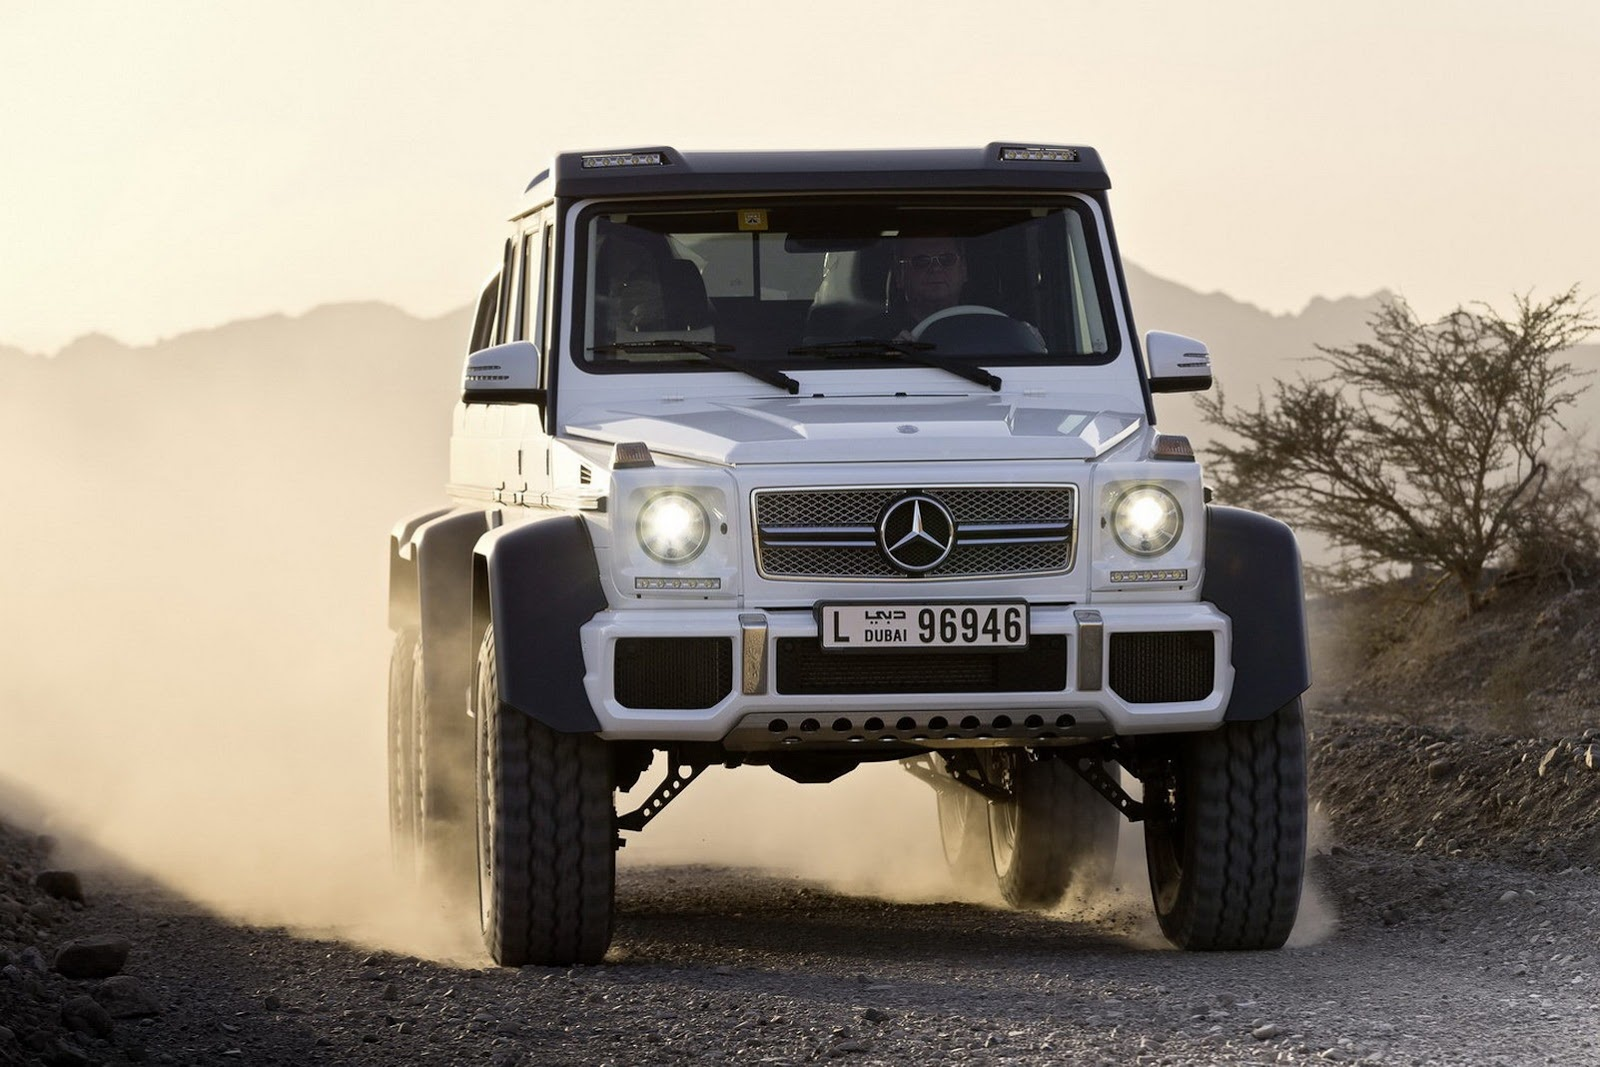 Mercedes benz g63 amg 6x6 pickup autooonline magazine for Mercedes benz g63 6x6 amg